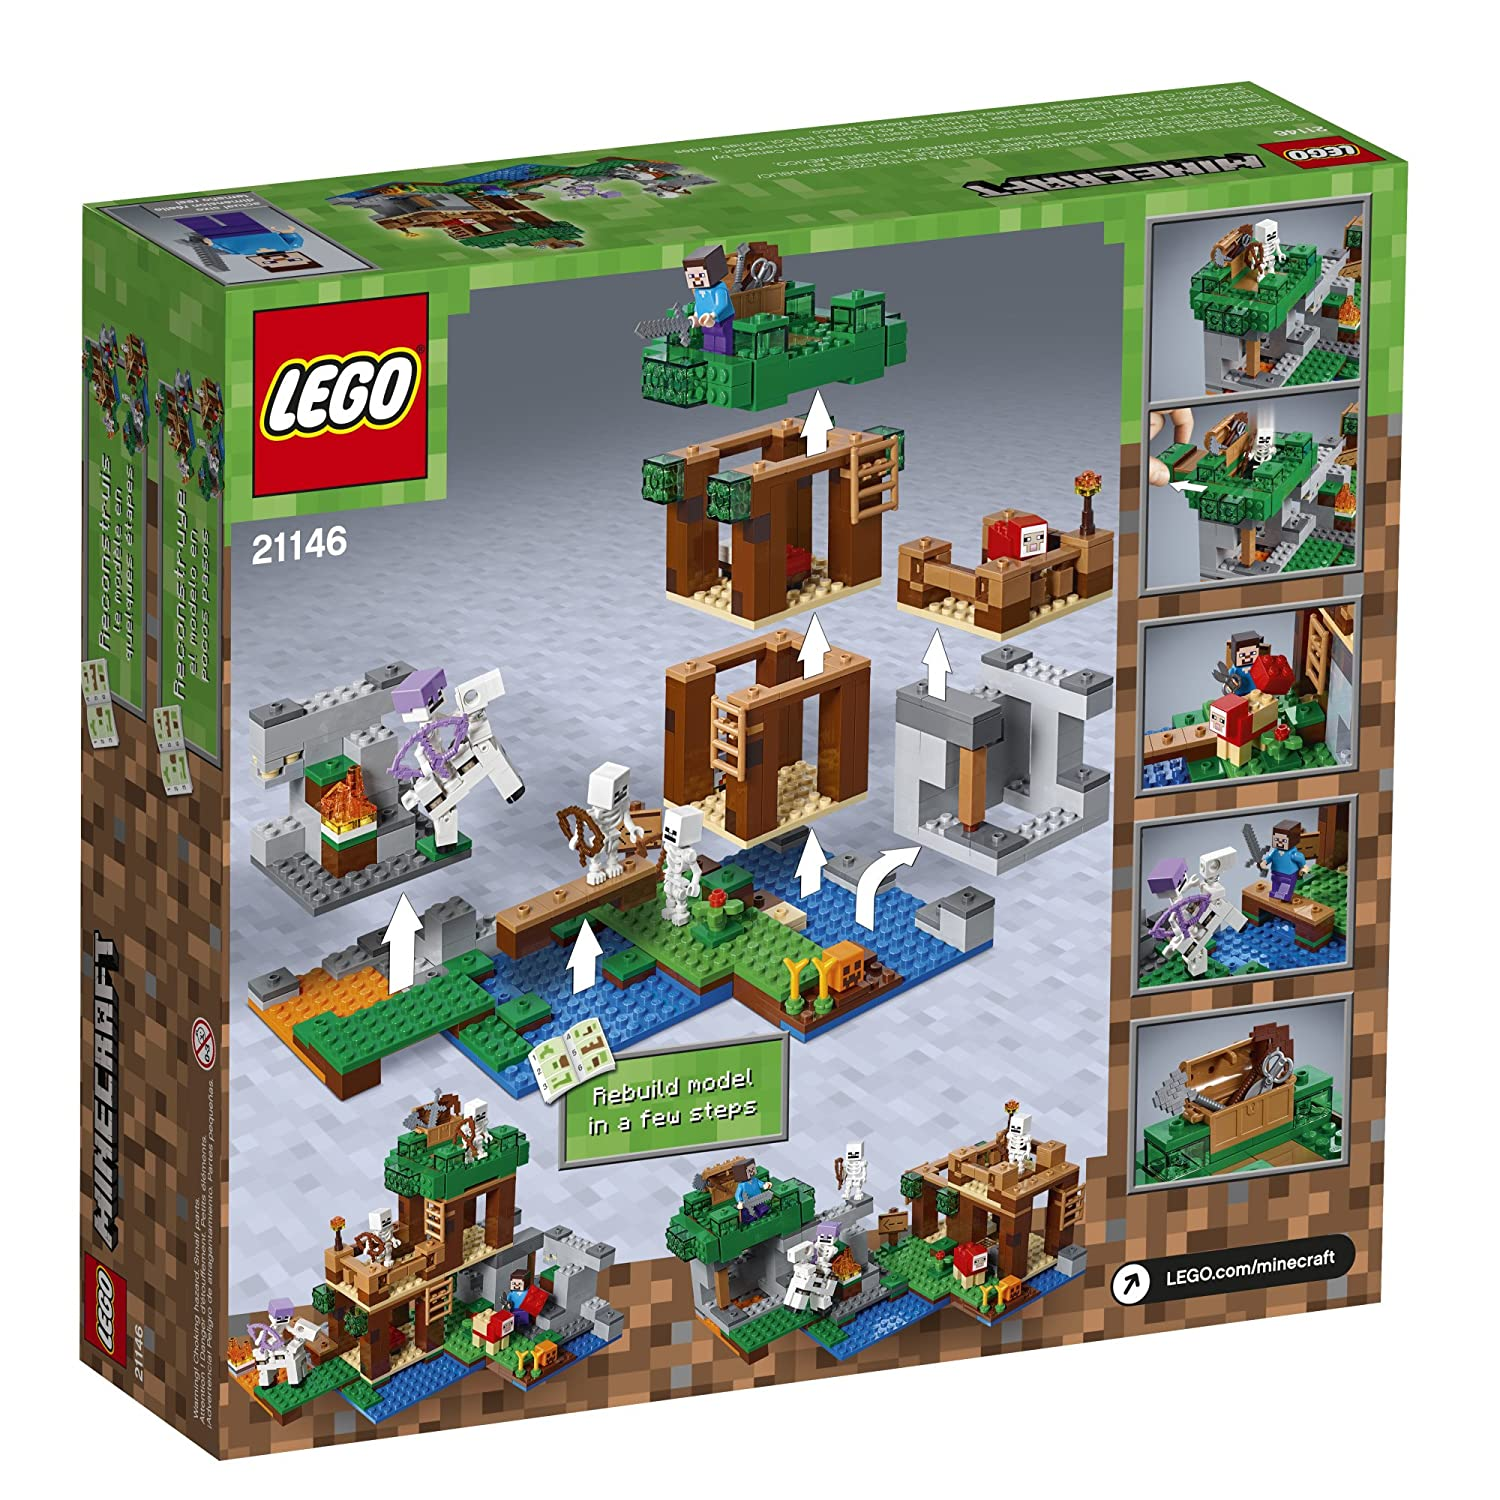 Model Building The Best The Skeleton Arena Set Bricks Compatible With Legoing Minecraft 21146 Model Building Blocks Boys Birthday Gift Children Toys Toys & Hobbies